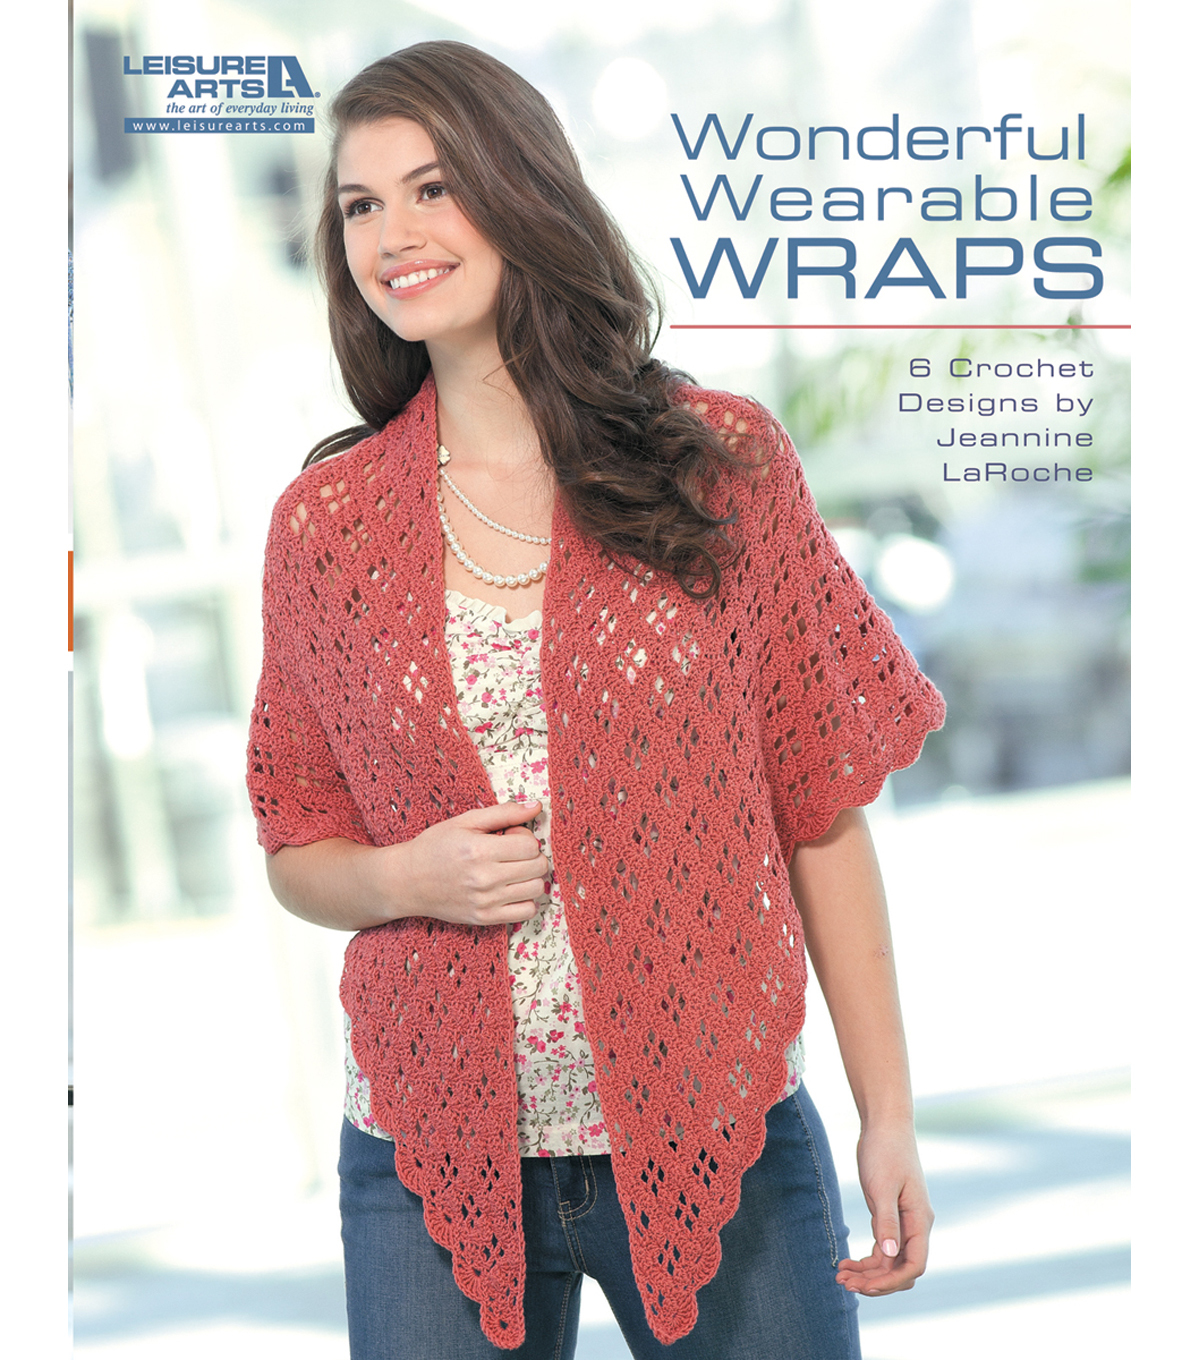 Leisure Arts-Wonderful Wearable Wraps